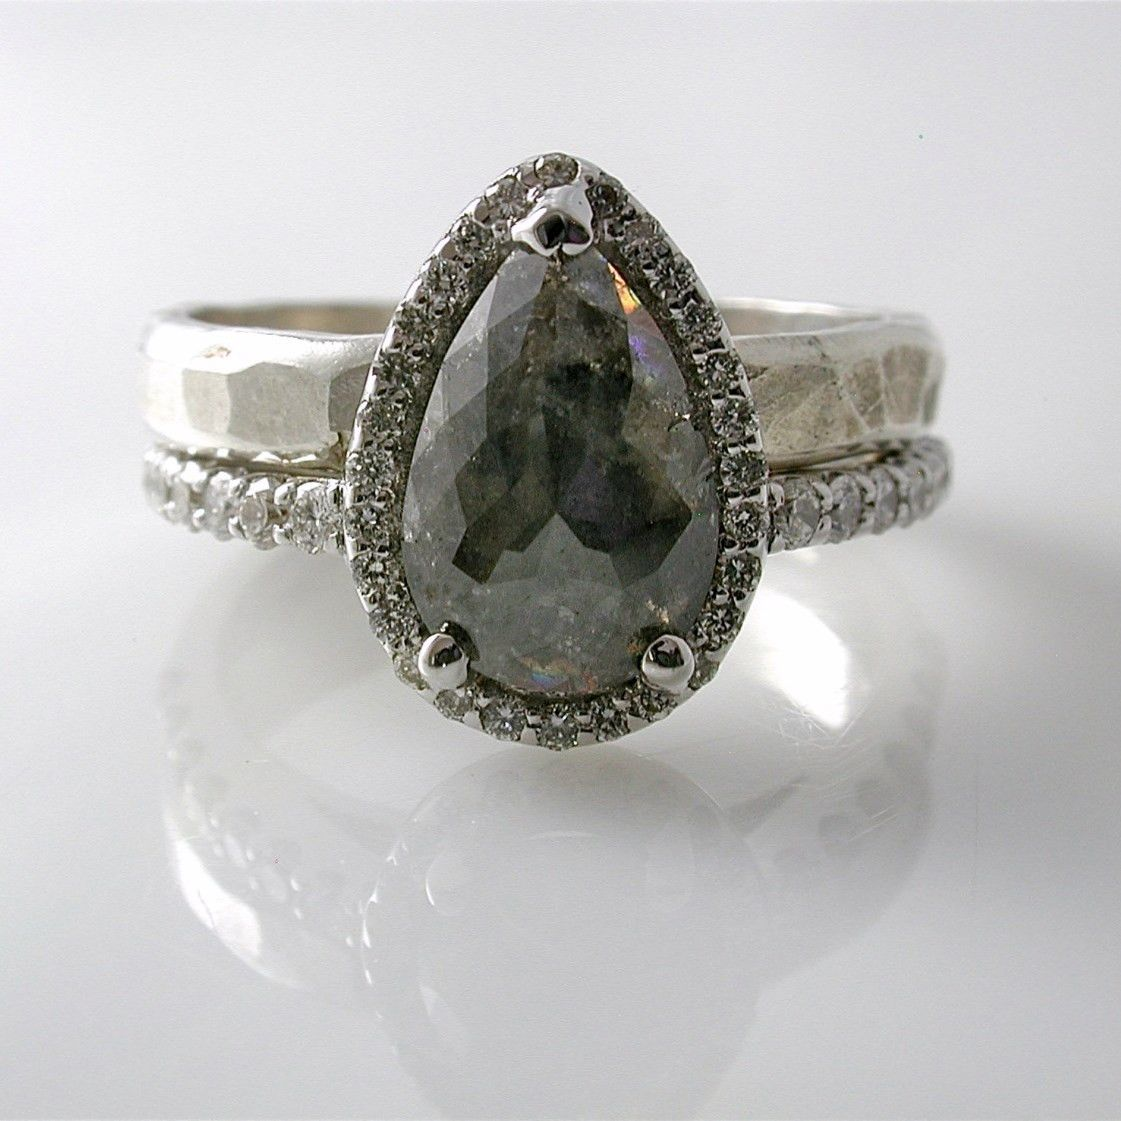 Grey Diamond Engagement Ring - Rustic, Pear Shape. Made to Order